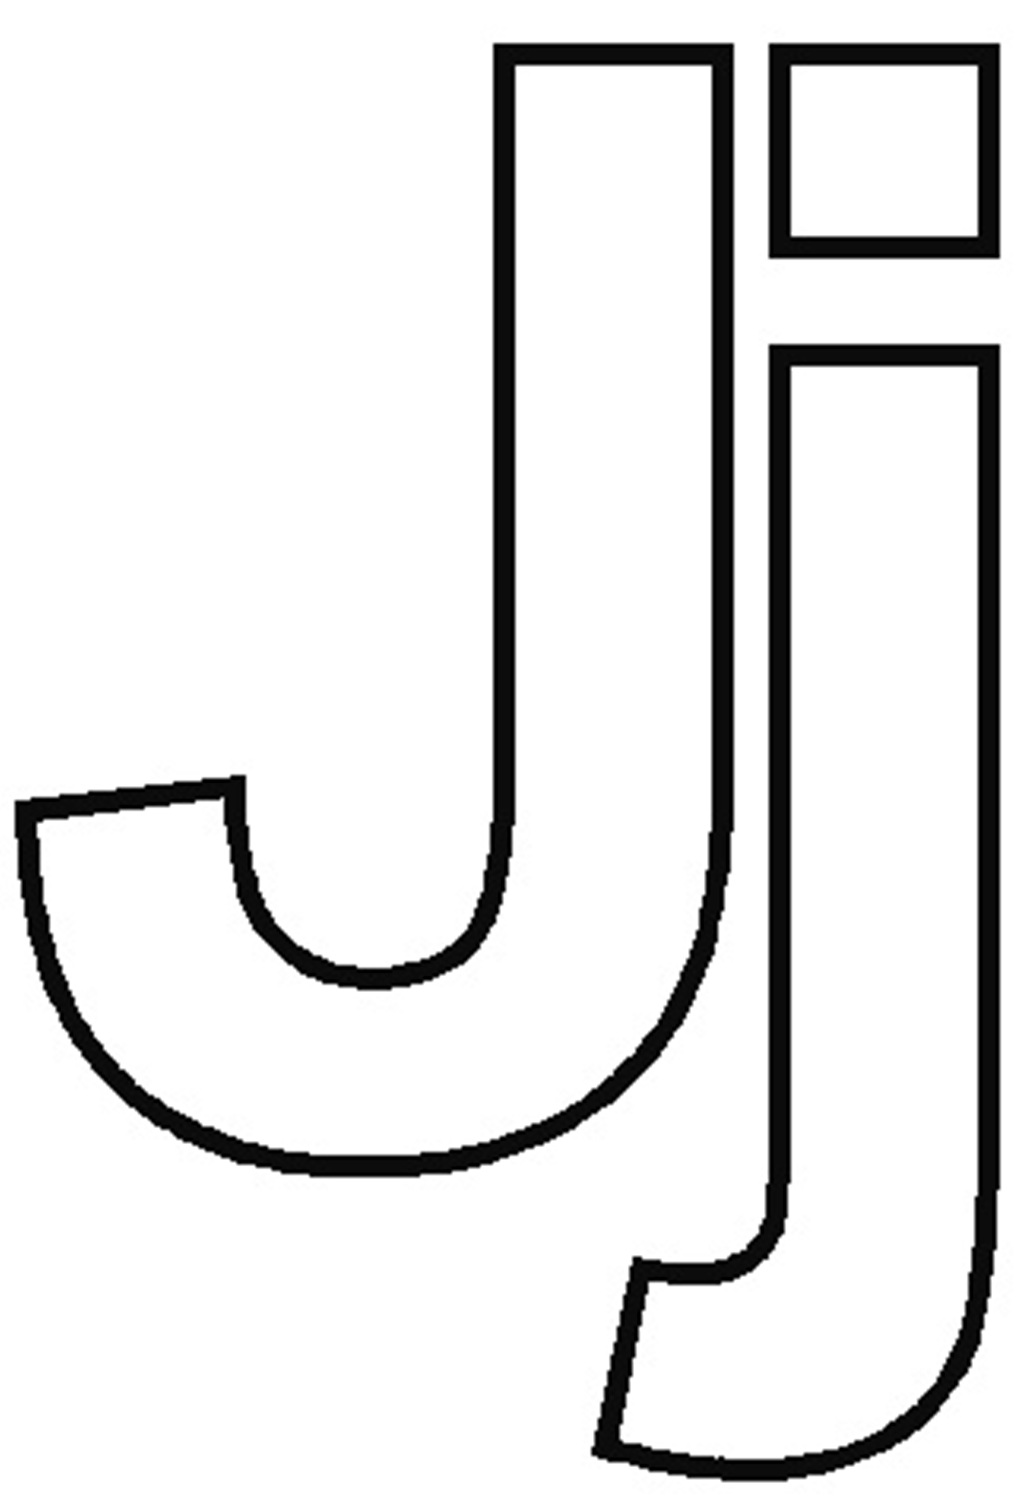 coloring sheet alphabet coloring pages letter j coloring pages to download and print for free pages coloring coloring alphabet sheet